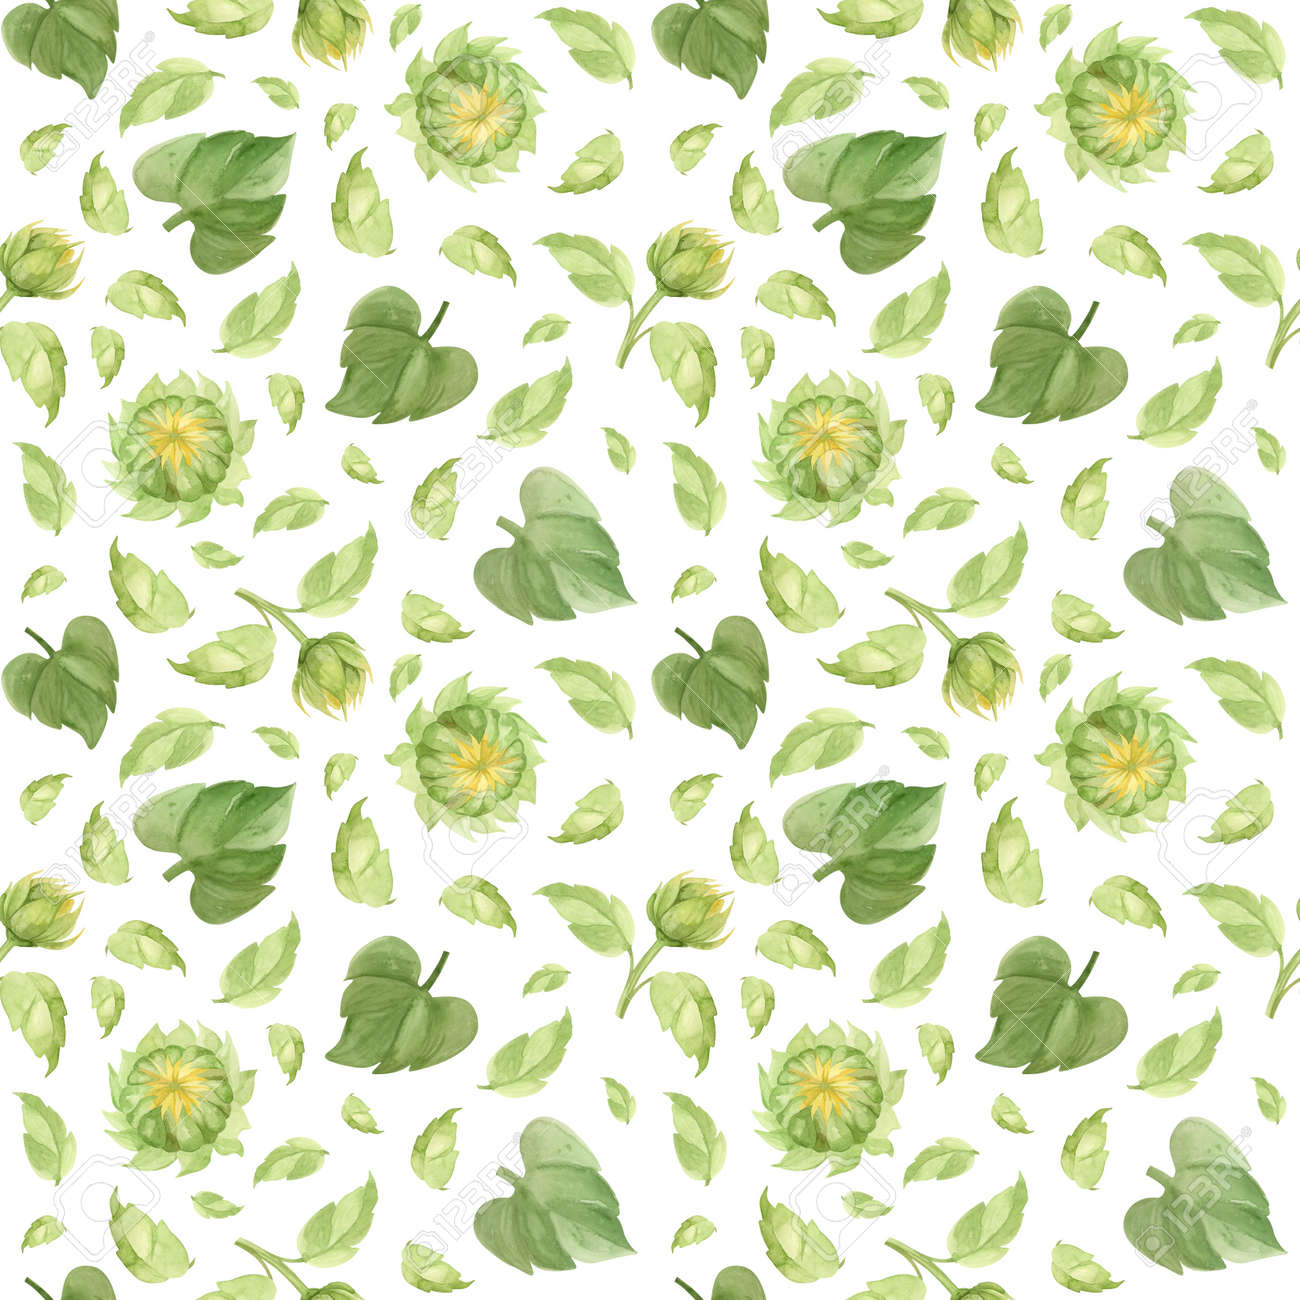 Sunflower buds and leaves seamless pattern. Watercolor clipart on white background - 172490660